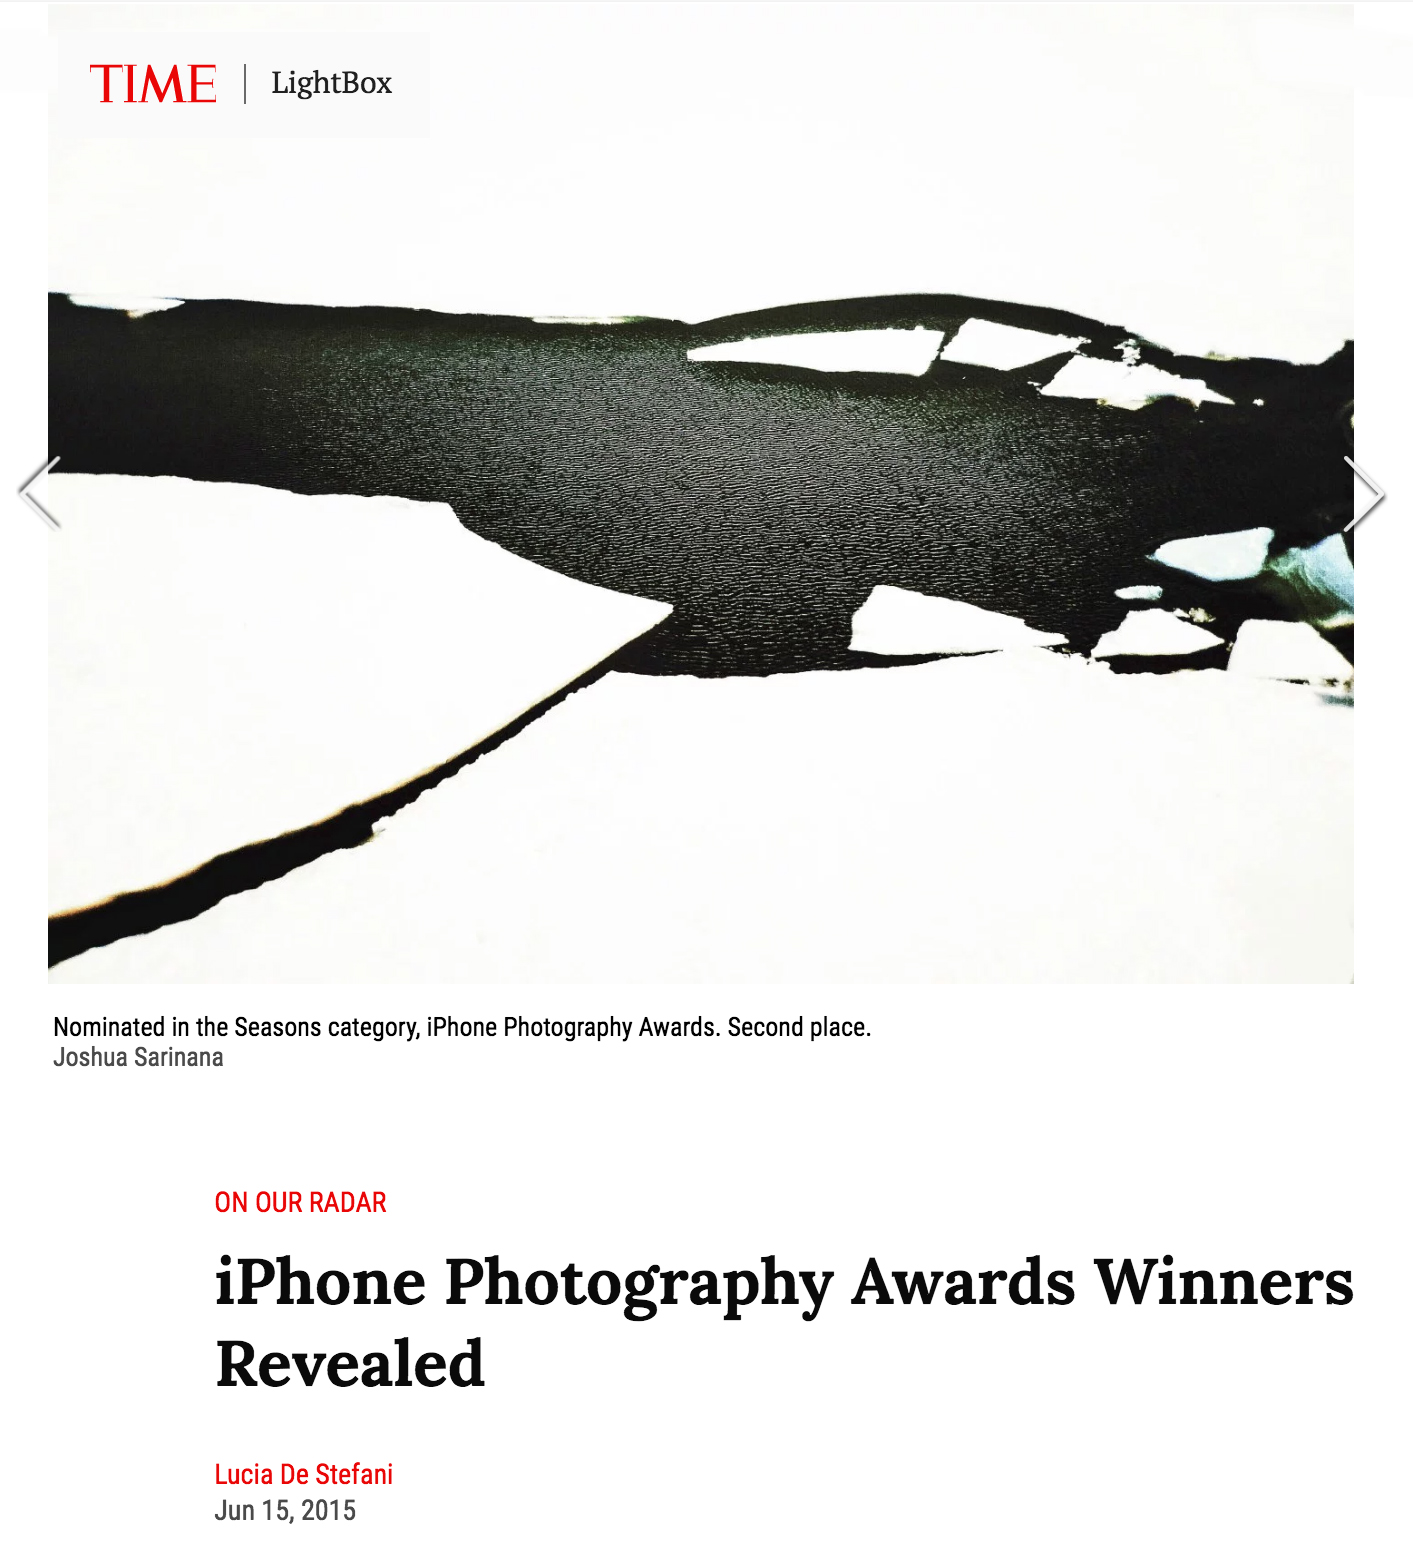 Time Lightbox - 2015 iPhone Photography Awards